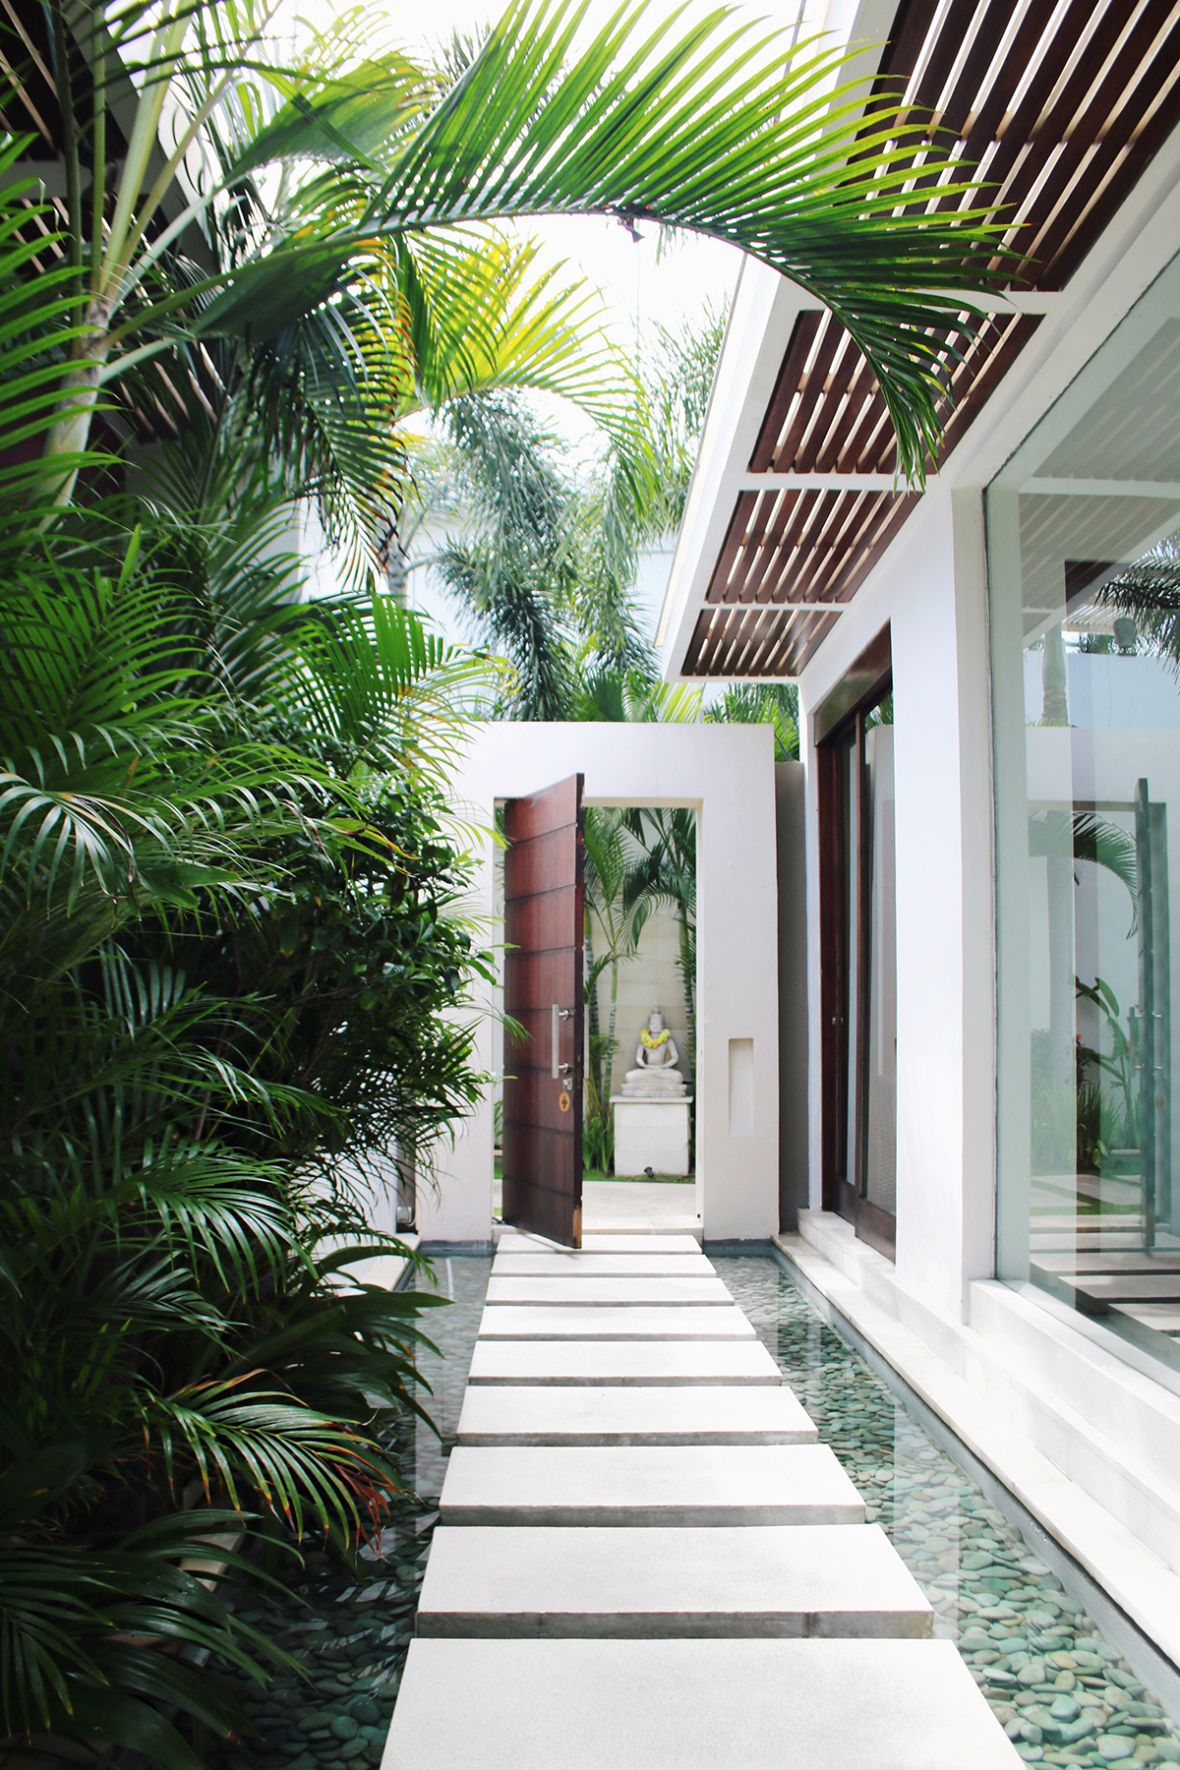 Chandra Bali Villas My Favorite Place In Bali More On The Blog